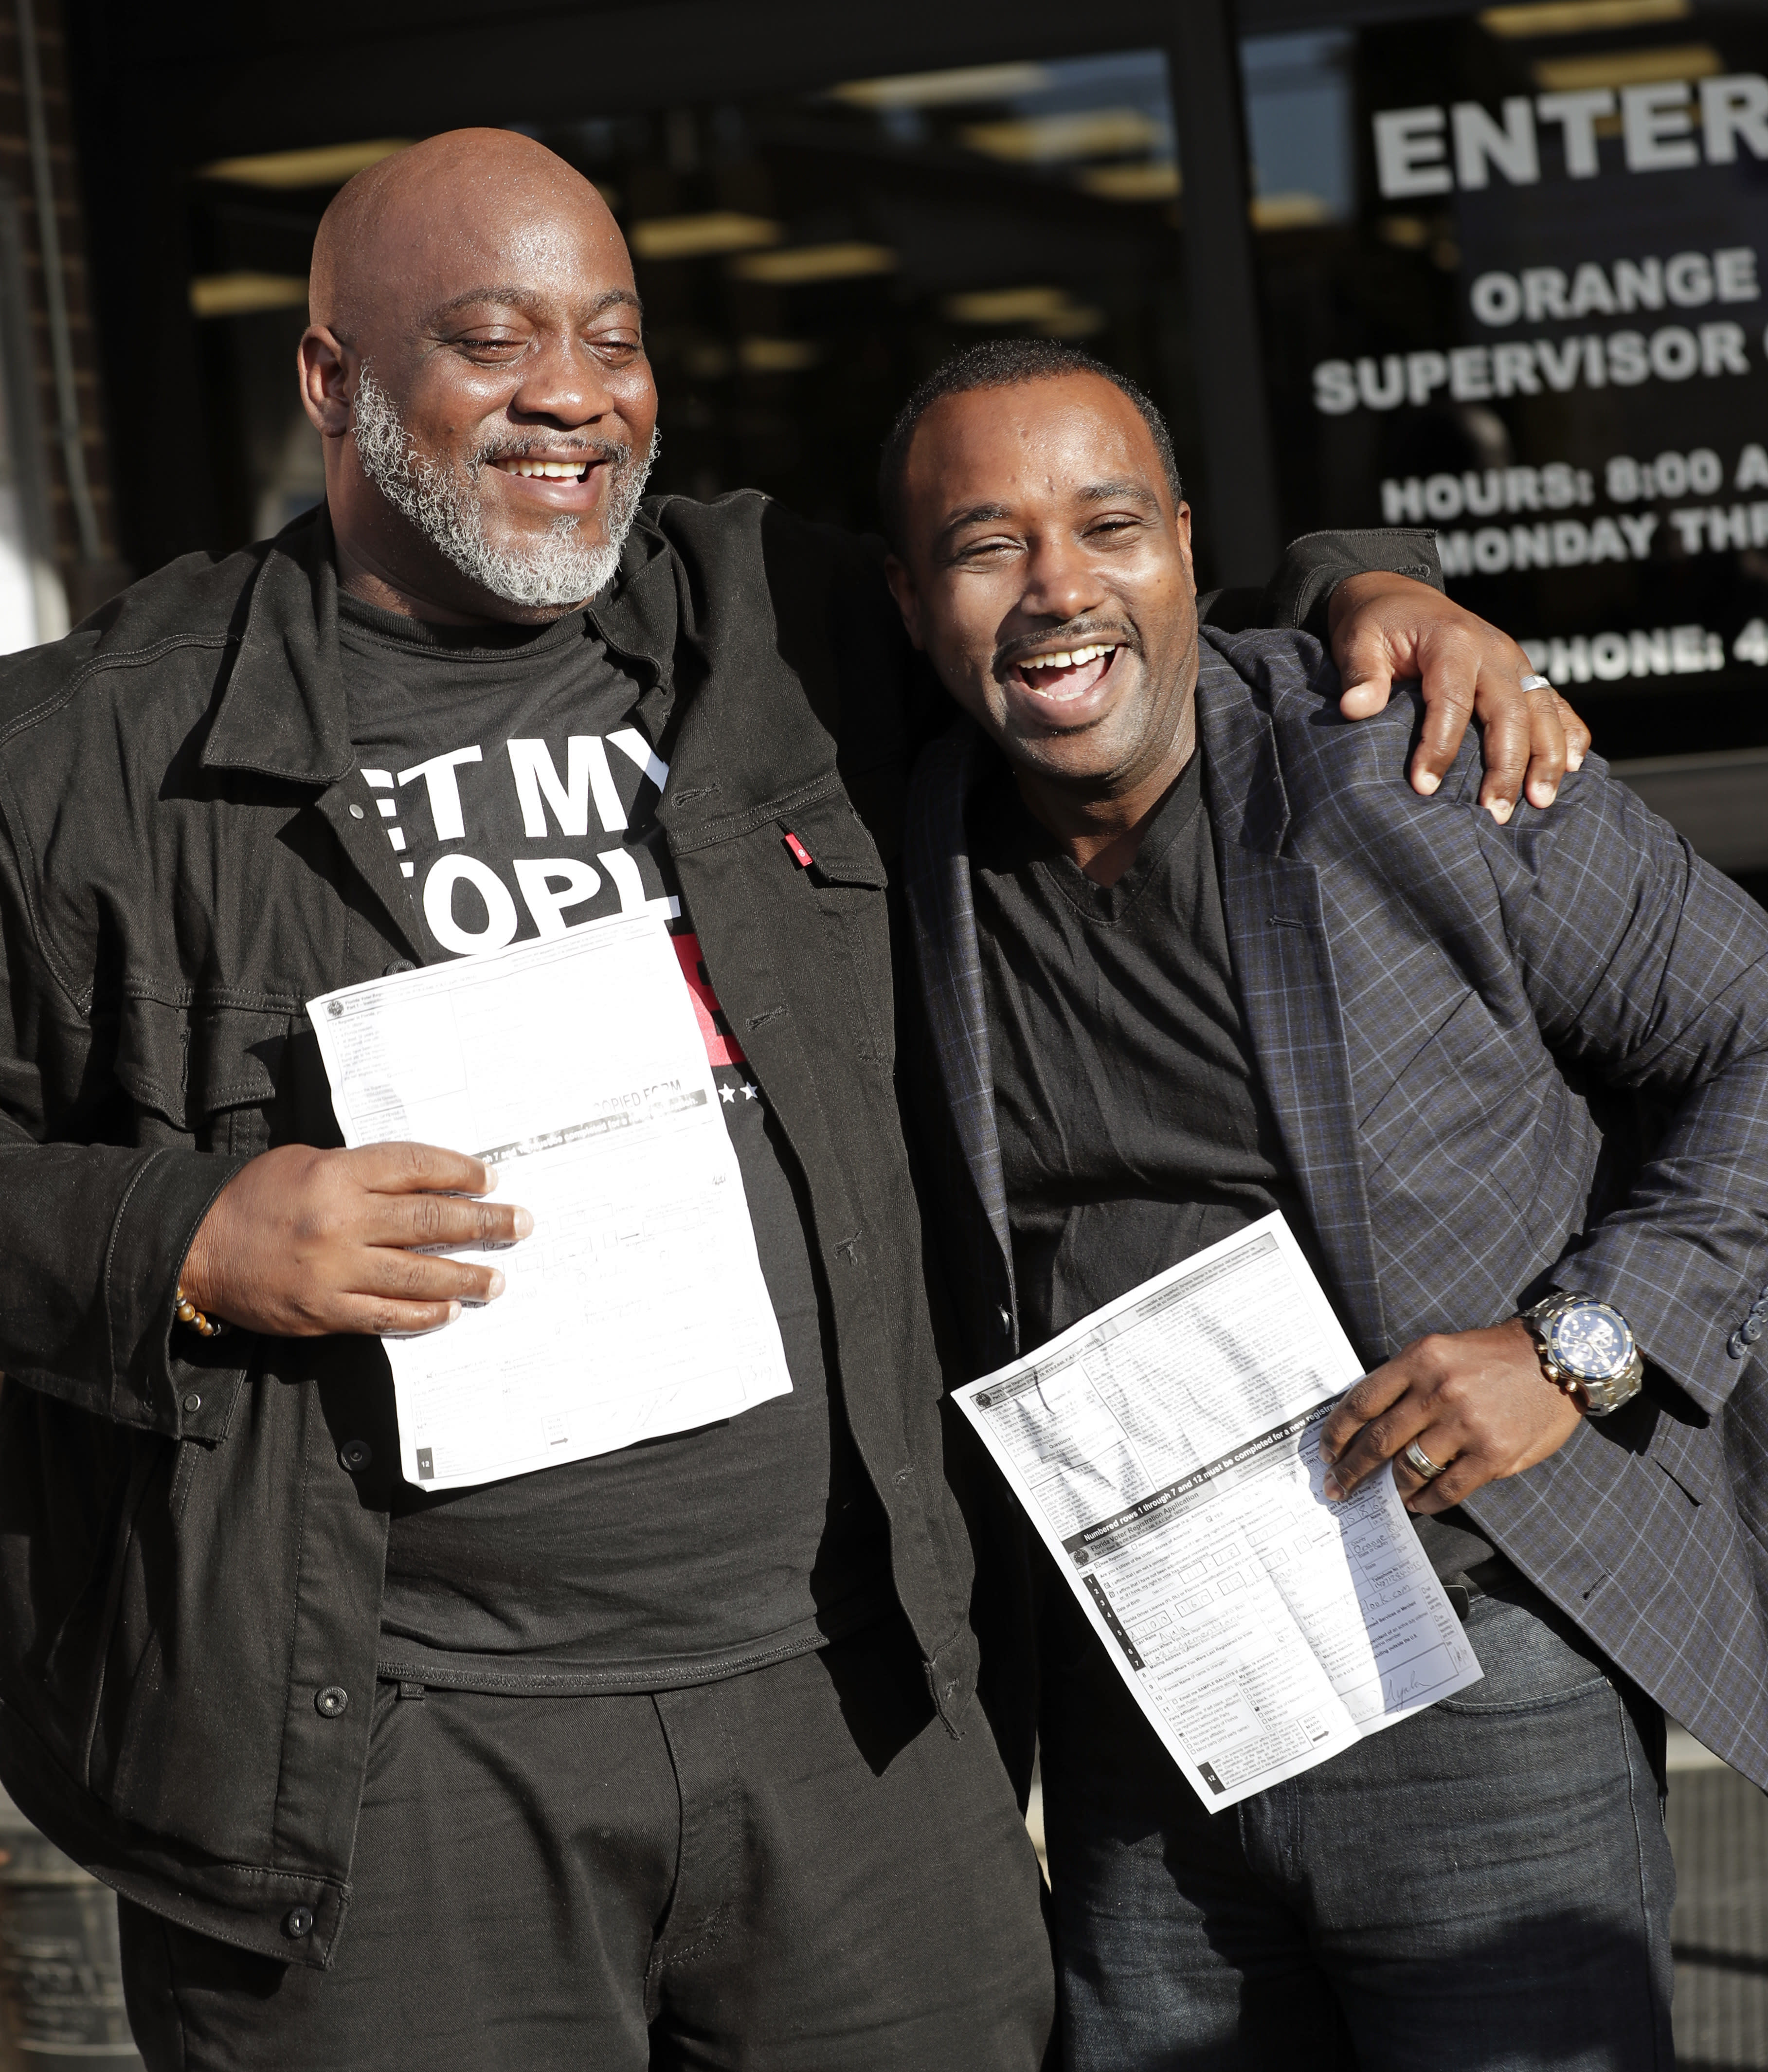 Former felons Desmond Meade, president of the Florida Rights Restoration Coalition, left, and David Ayala, husband of State Attorney Aramis Ayala, celebrate with copies of their voter registration forms after they registered at the Supervisor of Elections office Tuesday, Jan. 8, 2019, in Orlando, Fla. Former felons in Florida began registering for elections on Tuesday, when an amendment that restores their voting rights went into effect. (AP Photo/John Raoux)